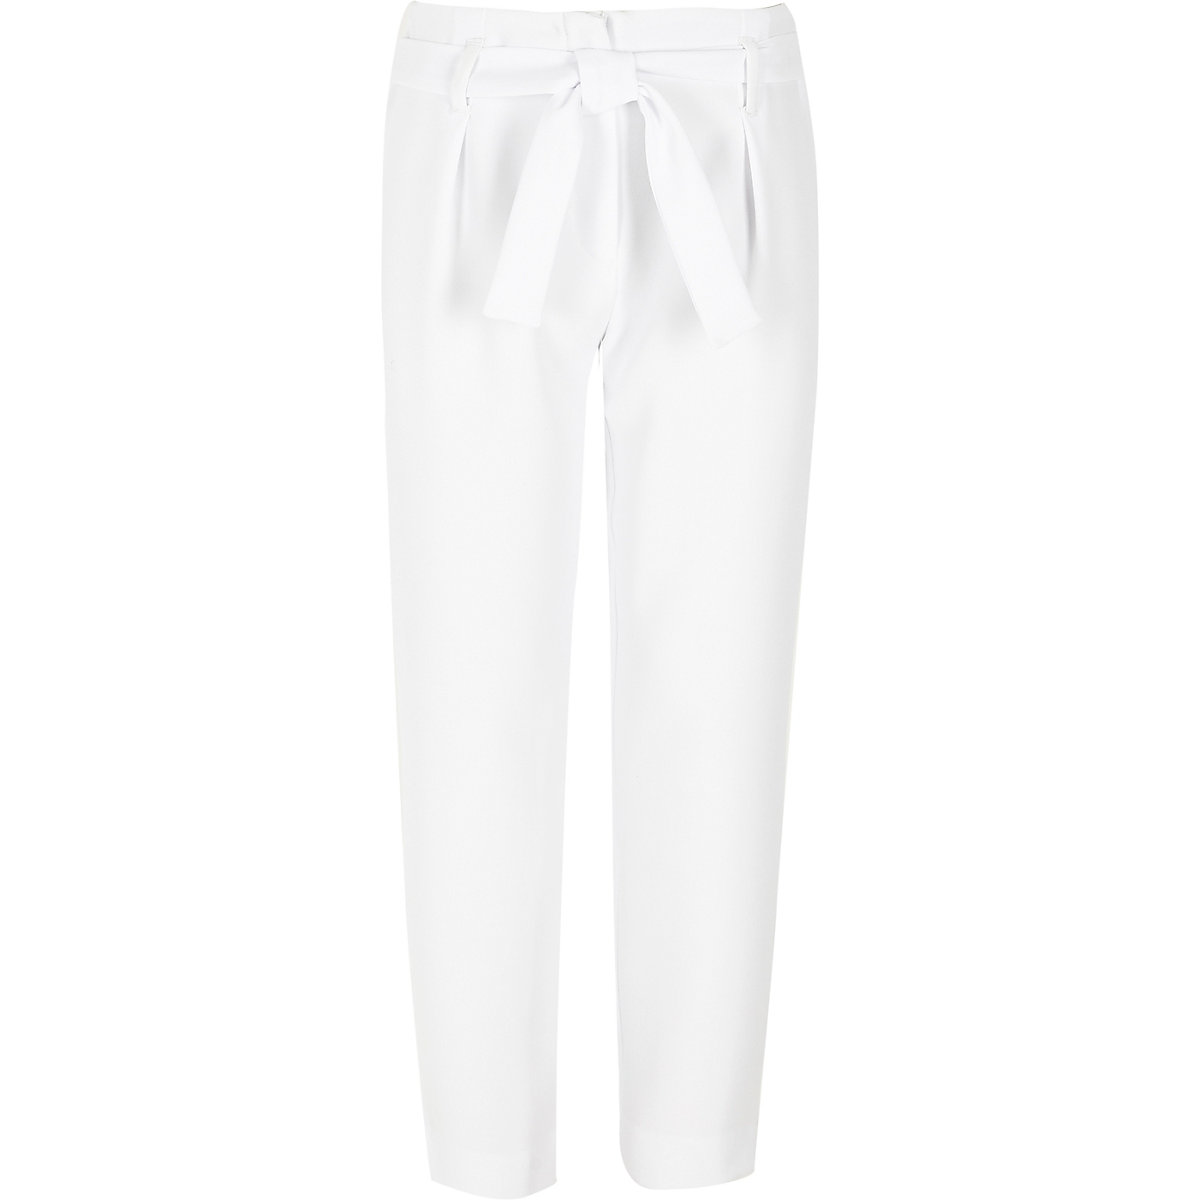 Girls white tie waist tapered pants